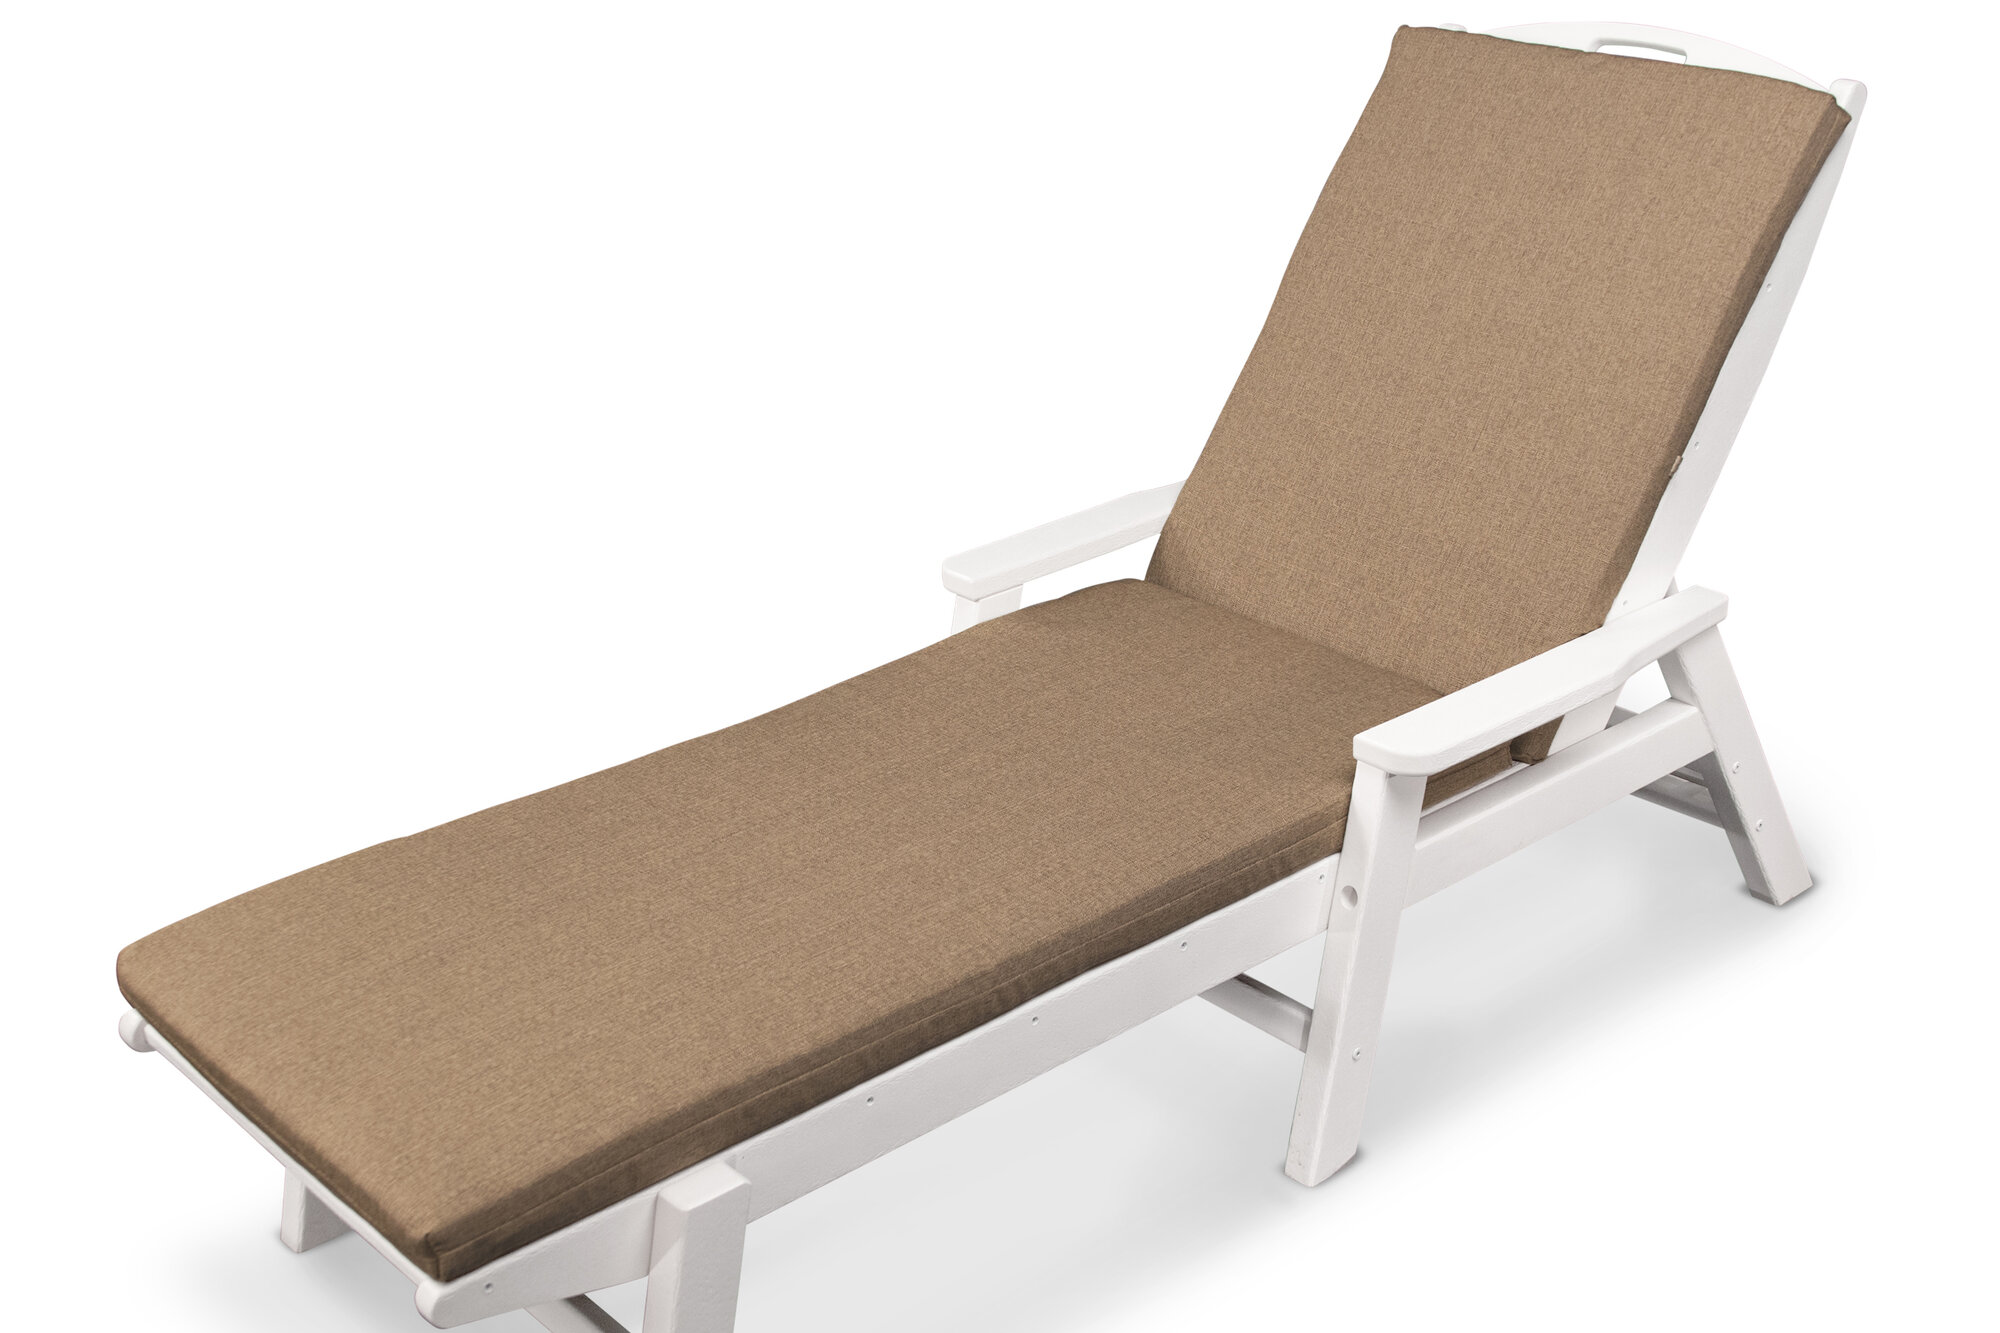 Ateeva outdoor sunbrella chaise lounge cushion ebay for Chaise lounge cushion covers outdoor